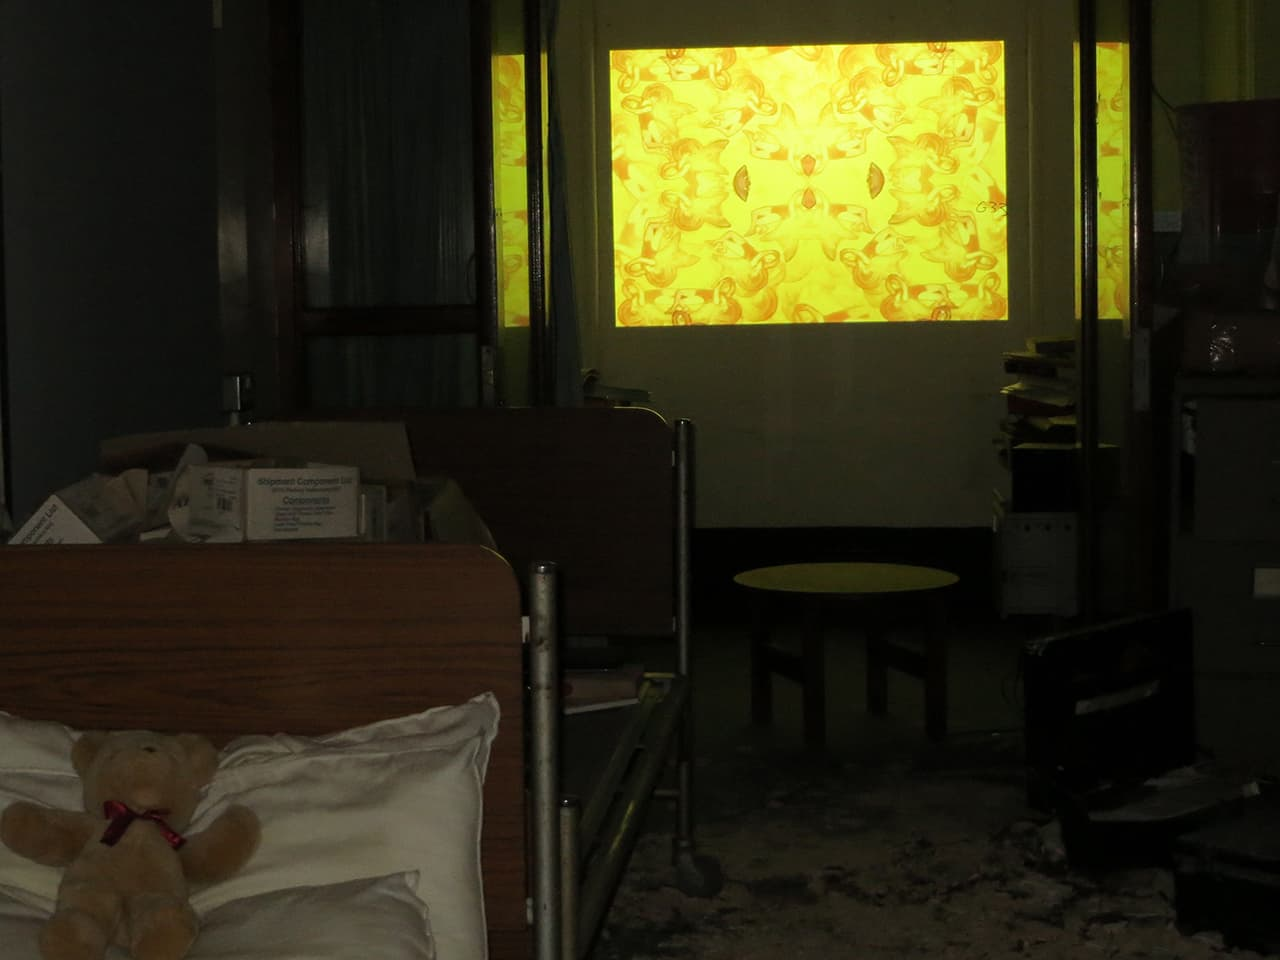 <strong>Going Native</strong>, video installation by Susan Aldworth at St Clement's Hospital, 2013. Photograph by Emma Crouch.